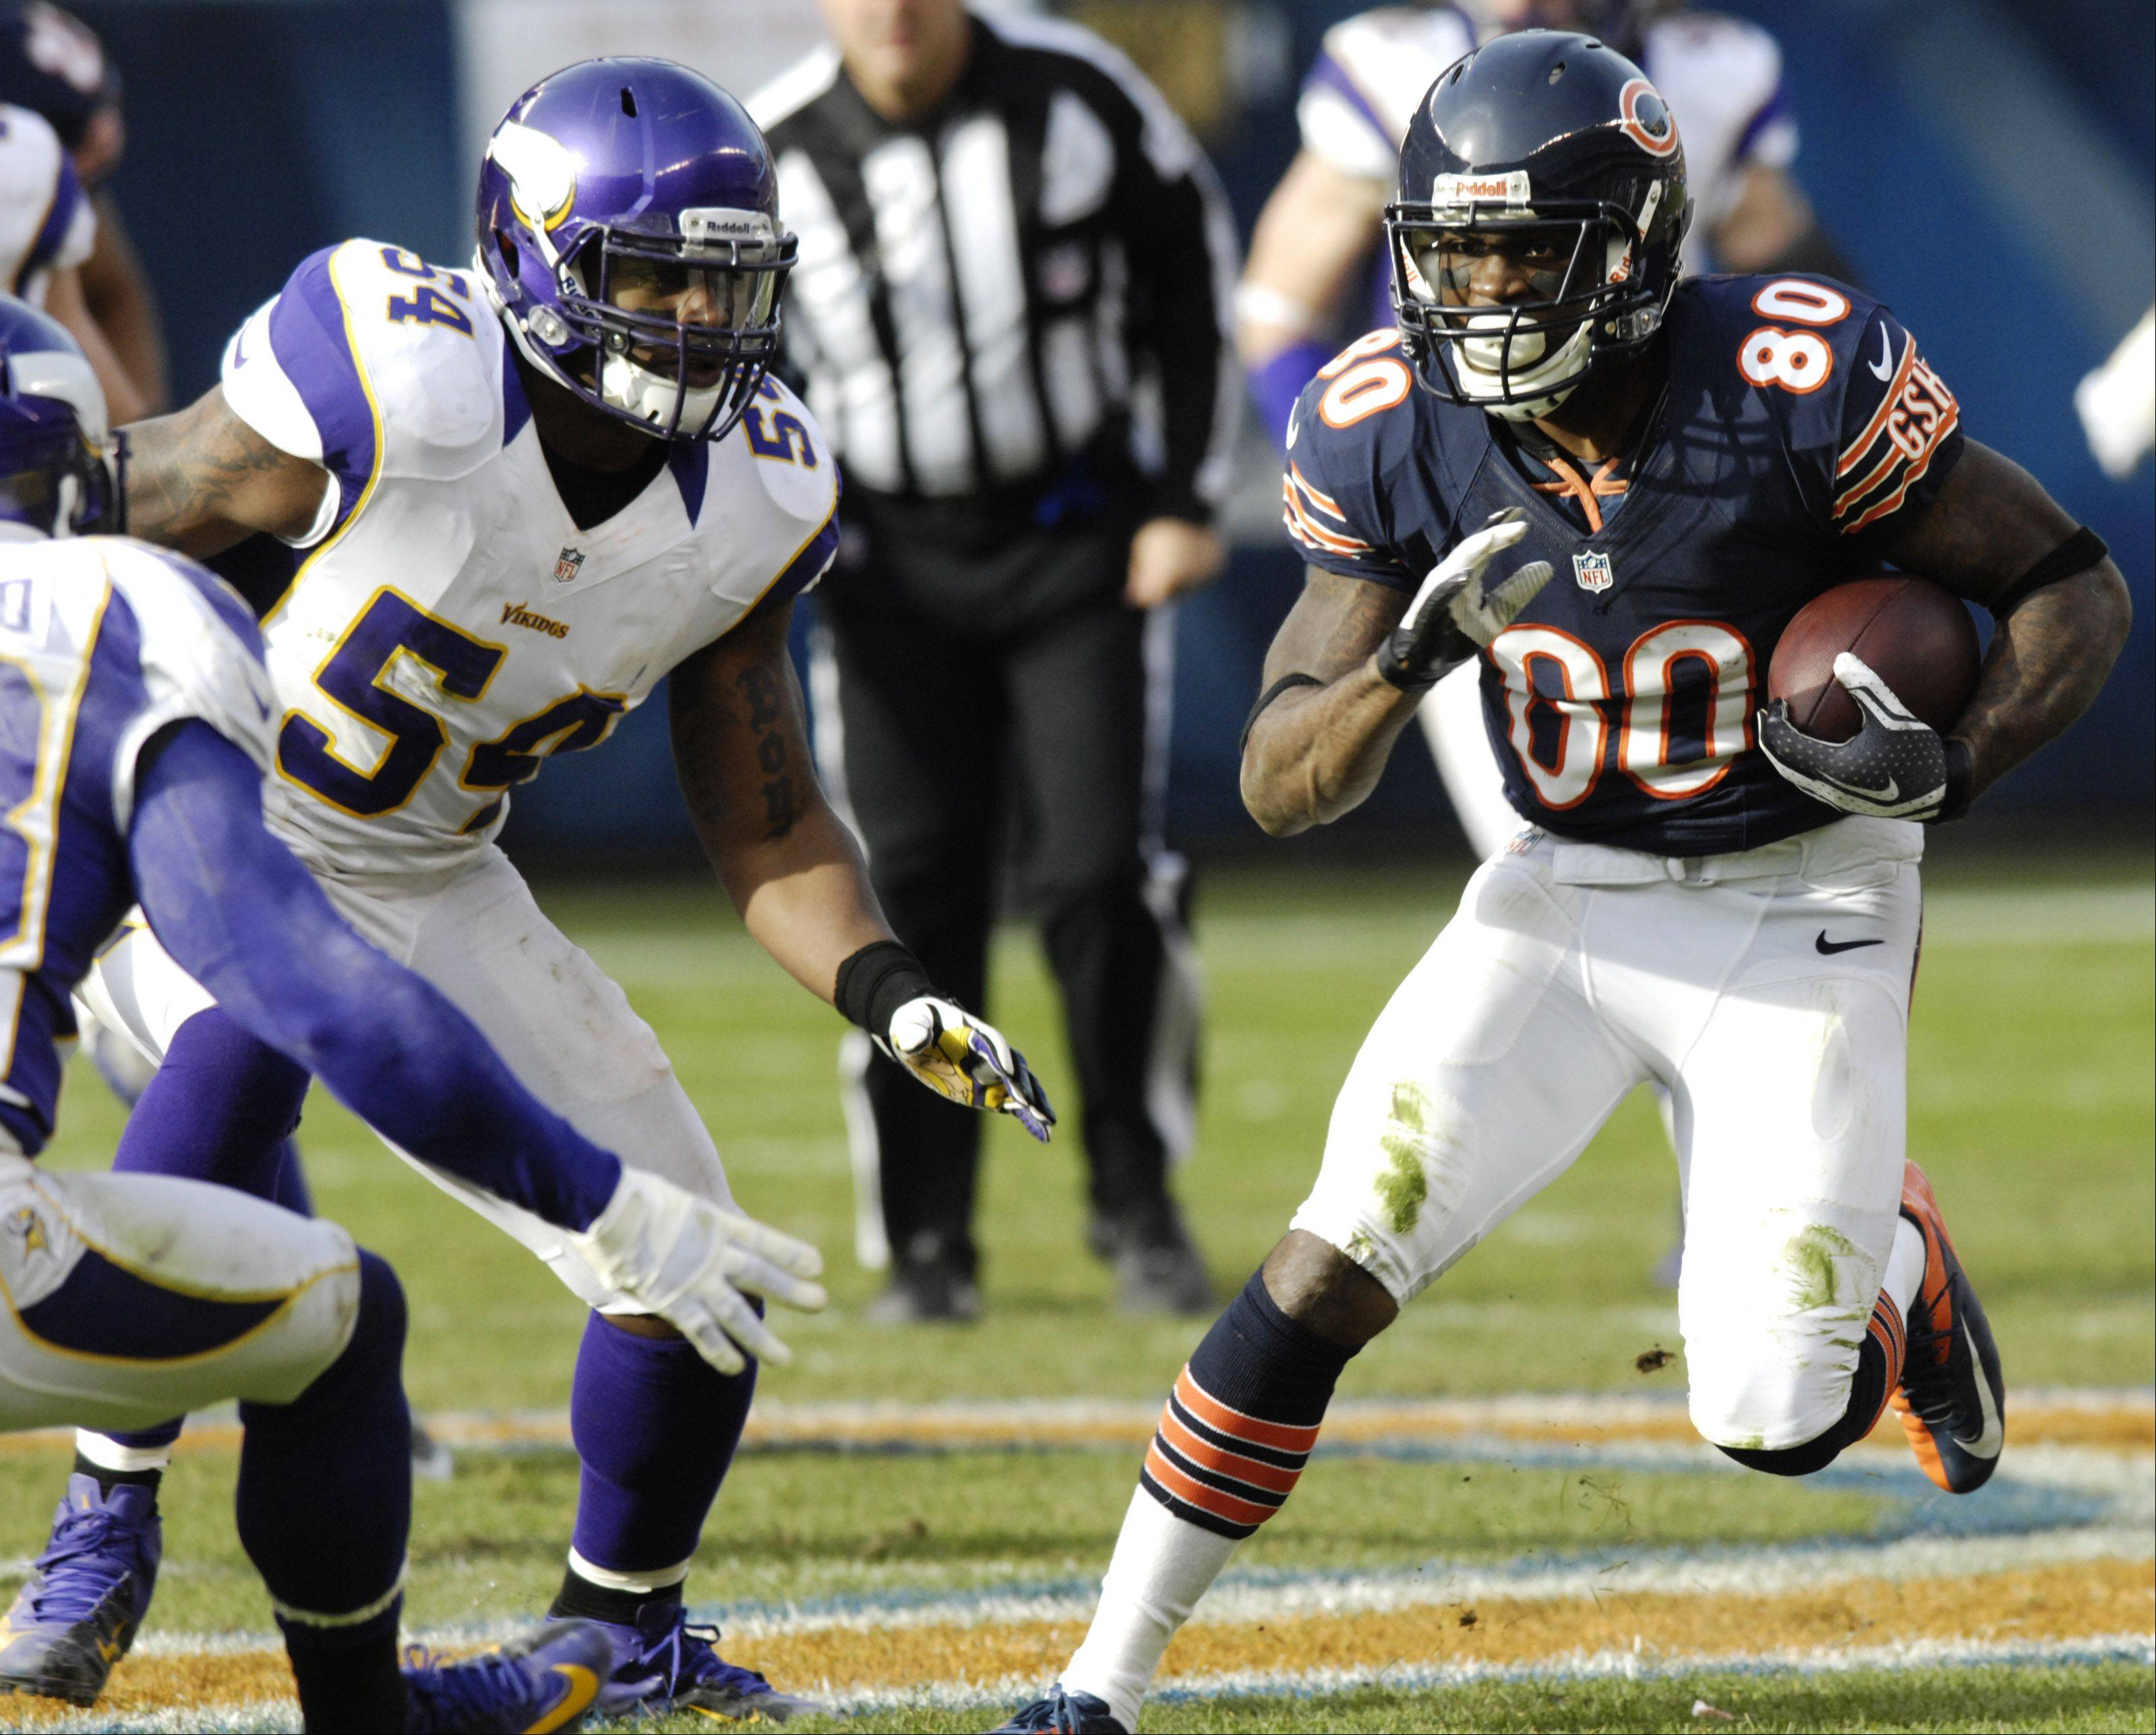 Chicago Bears wide receiver Earl Bennett carries the ball against the Minnesota Vikings at Soldier Field Sunday.